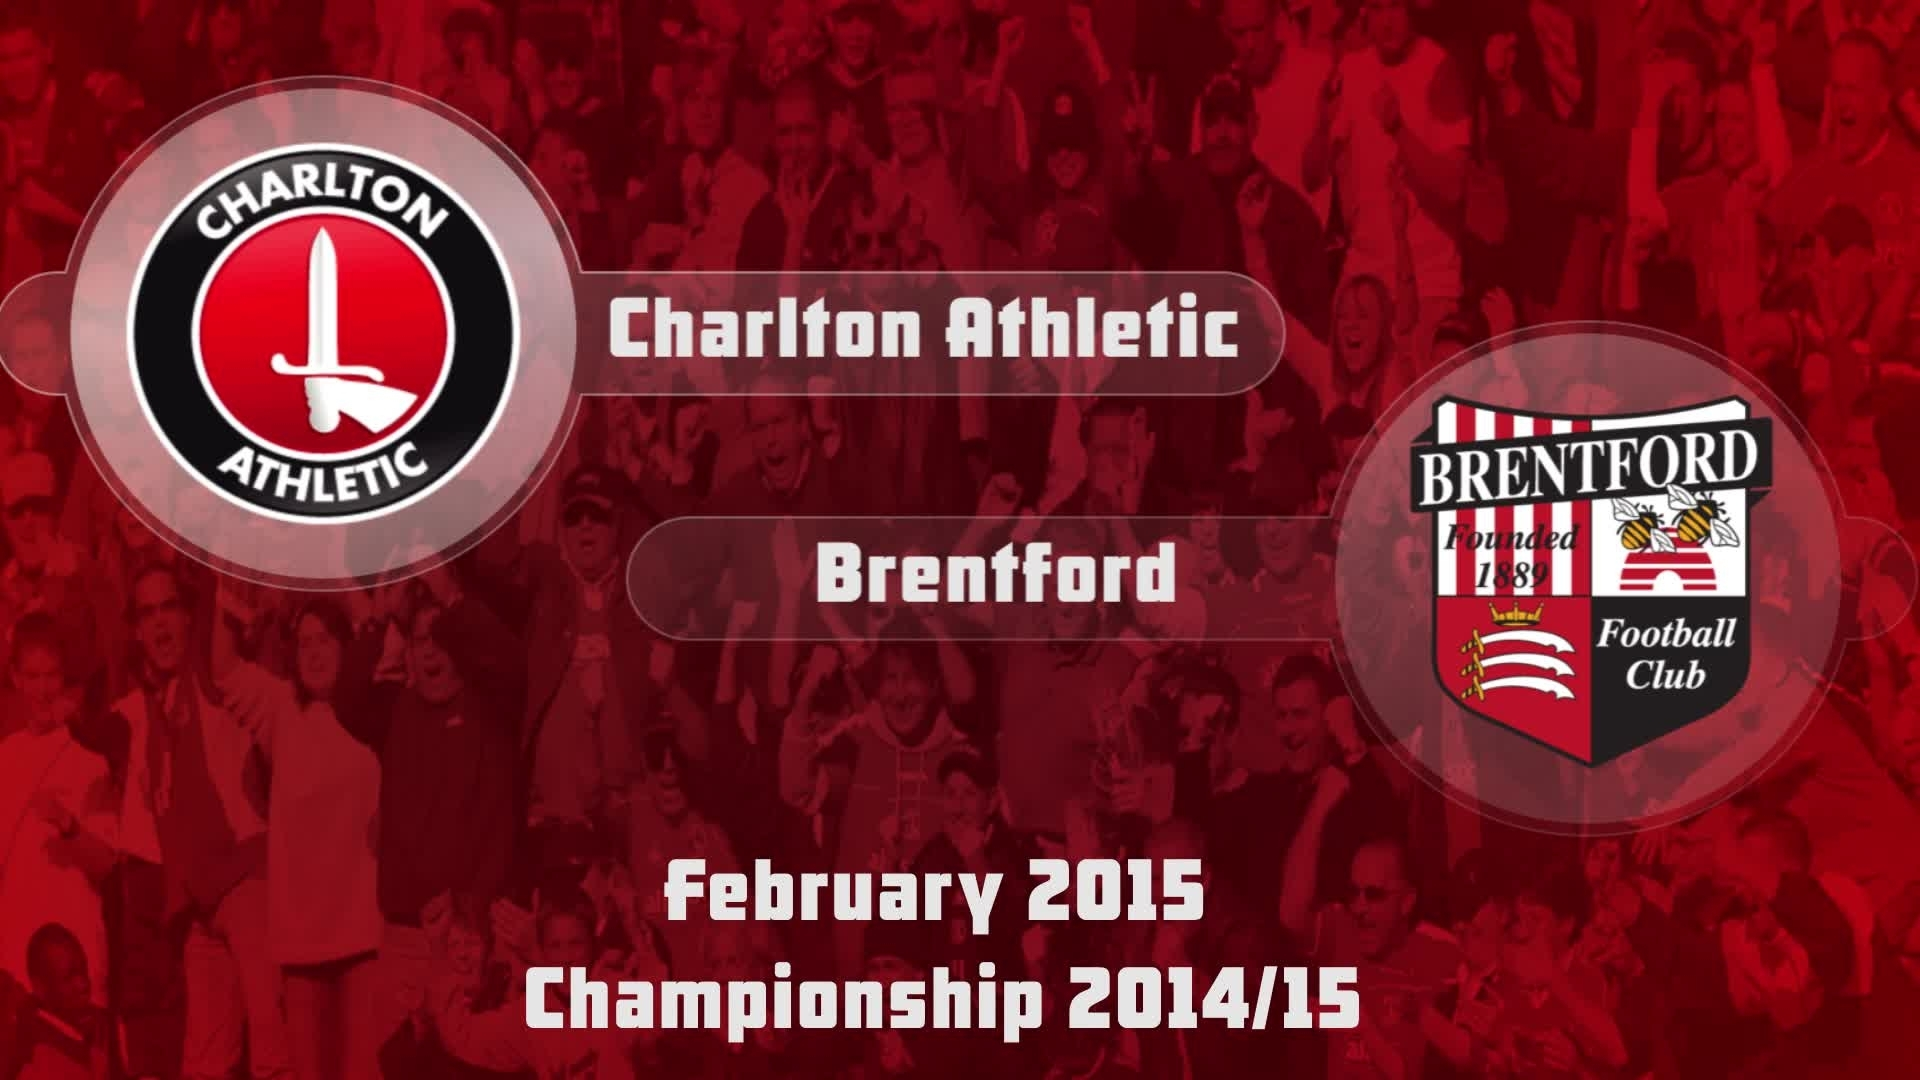 34 HIGHLIGHTS | Charlton 3 Brentford 0 (Feb 2015)